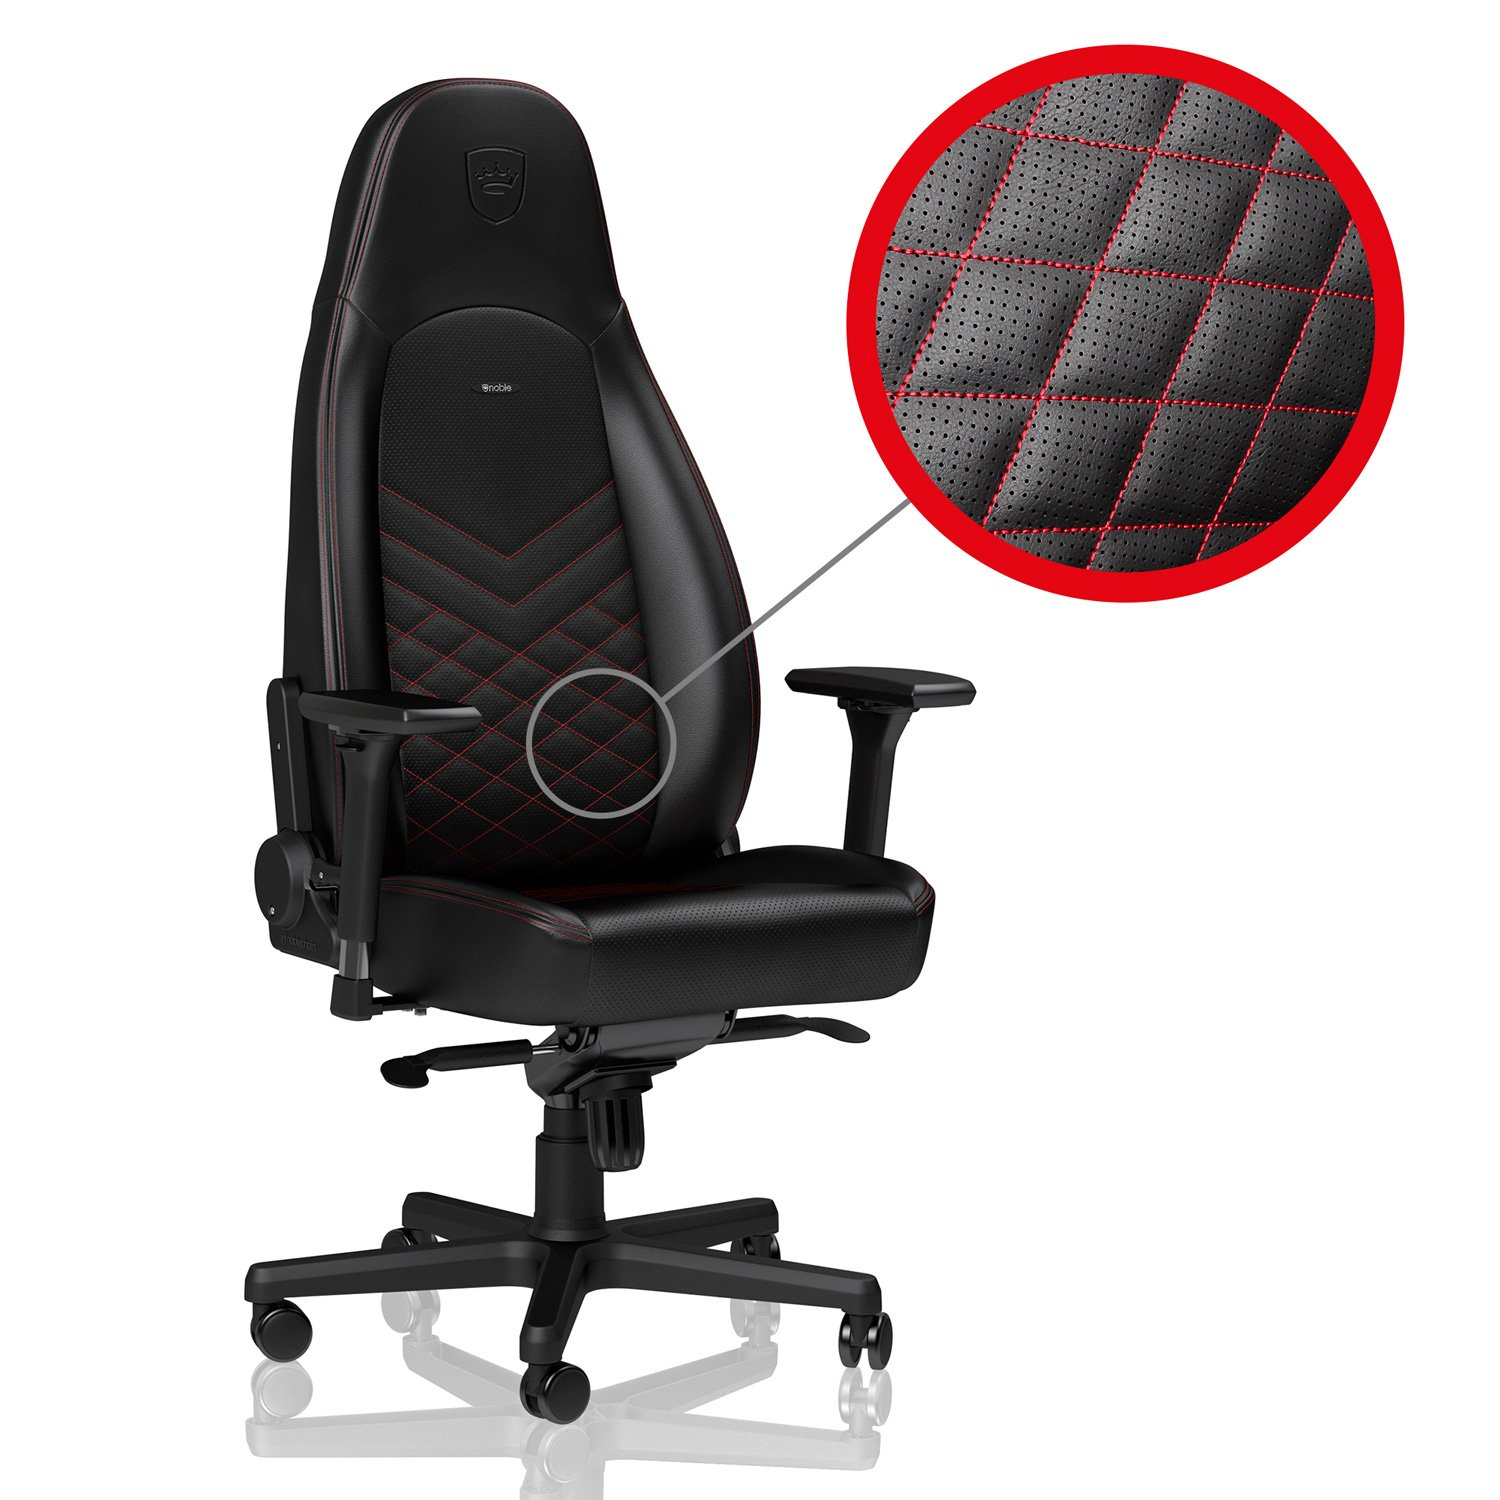 noblechairs ICON - Black/Red - Gaming Chair / Office Chair / Desk Chair